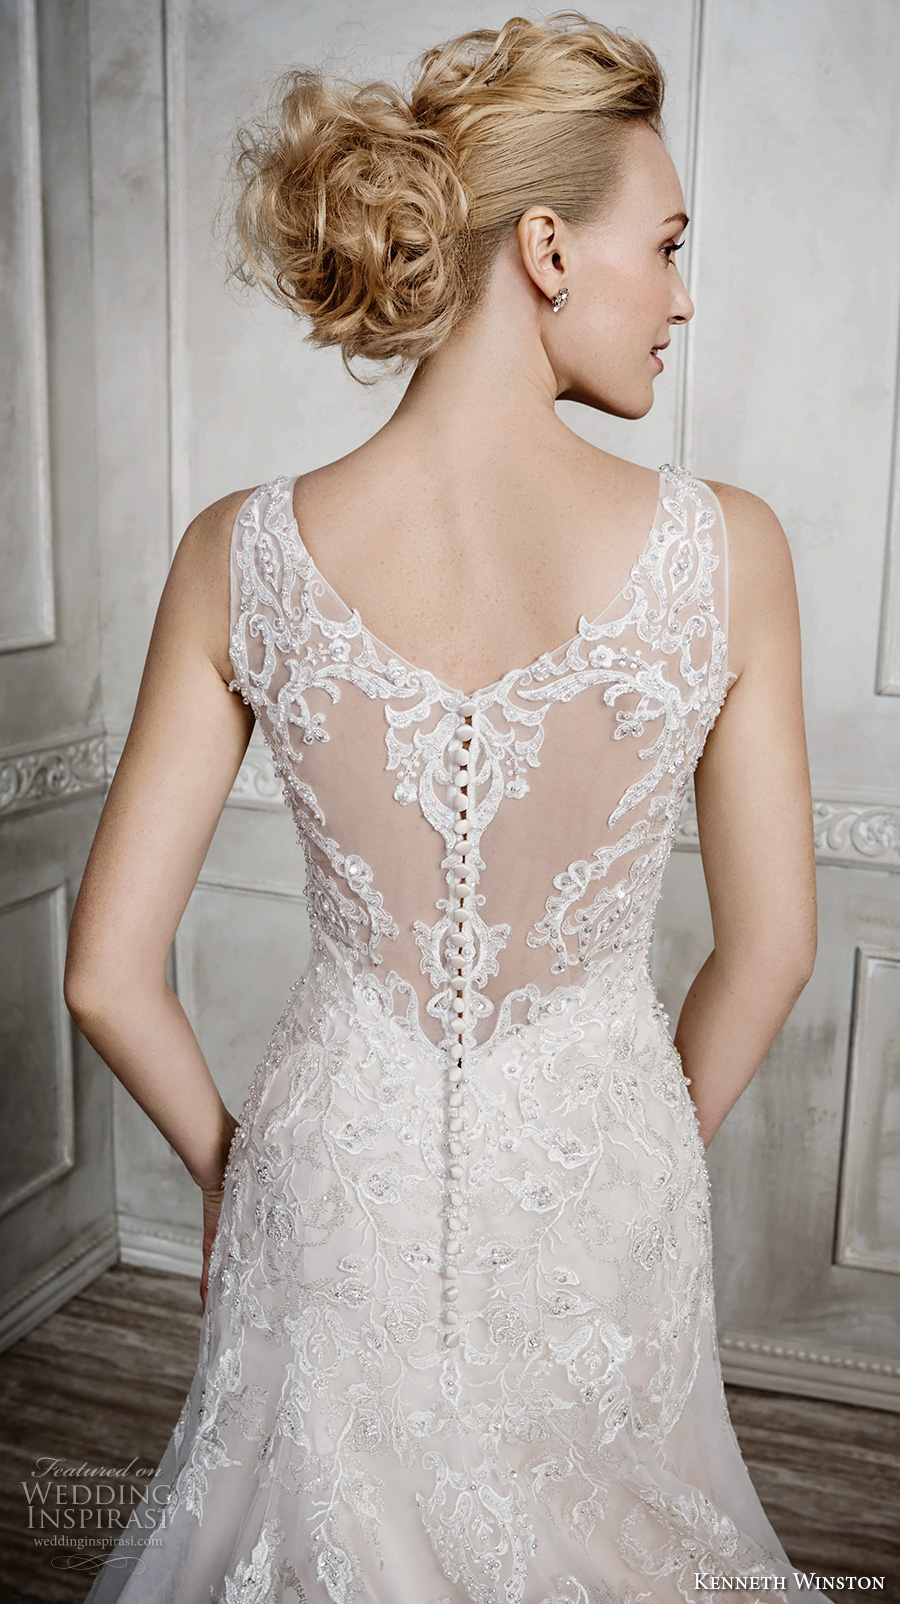 kenneth winston fall 2016 bridal sleeveless thick lace strap v neck heavily embellished bodice beautiful elegant a line wedding dress sheer lace back chapel train (1668) zbv